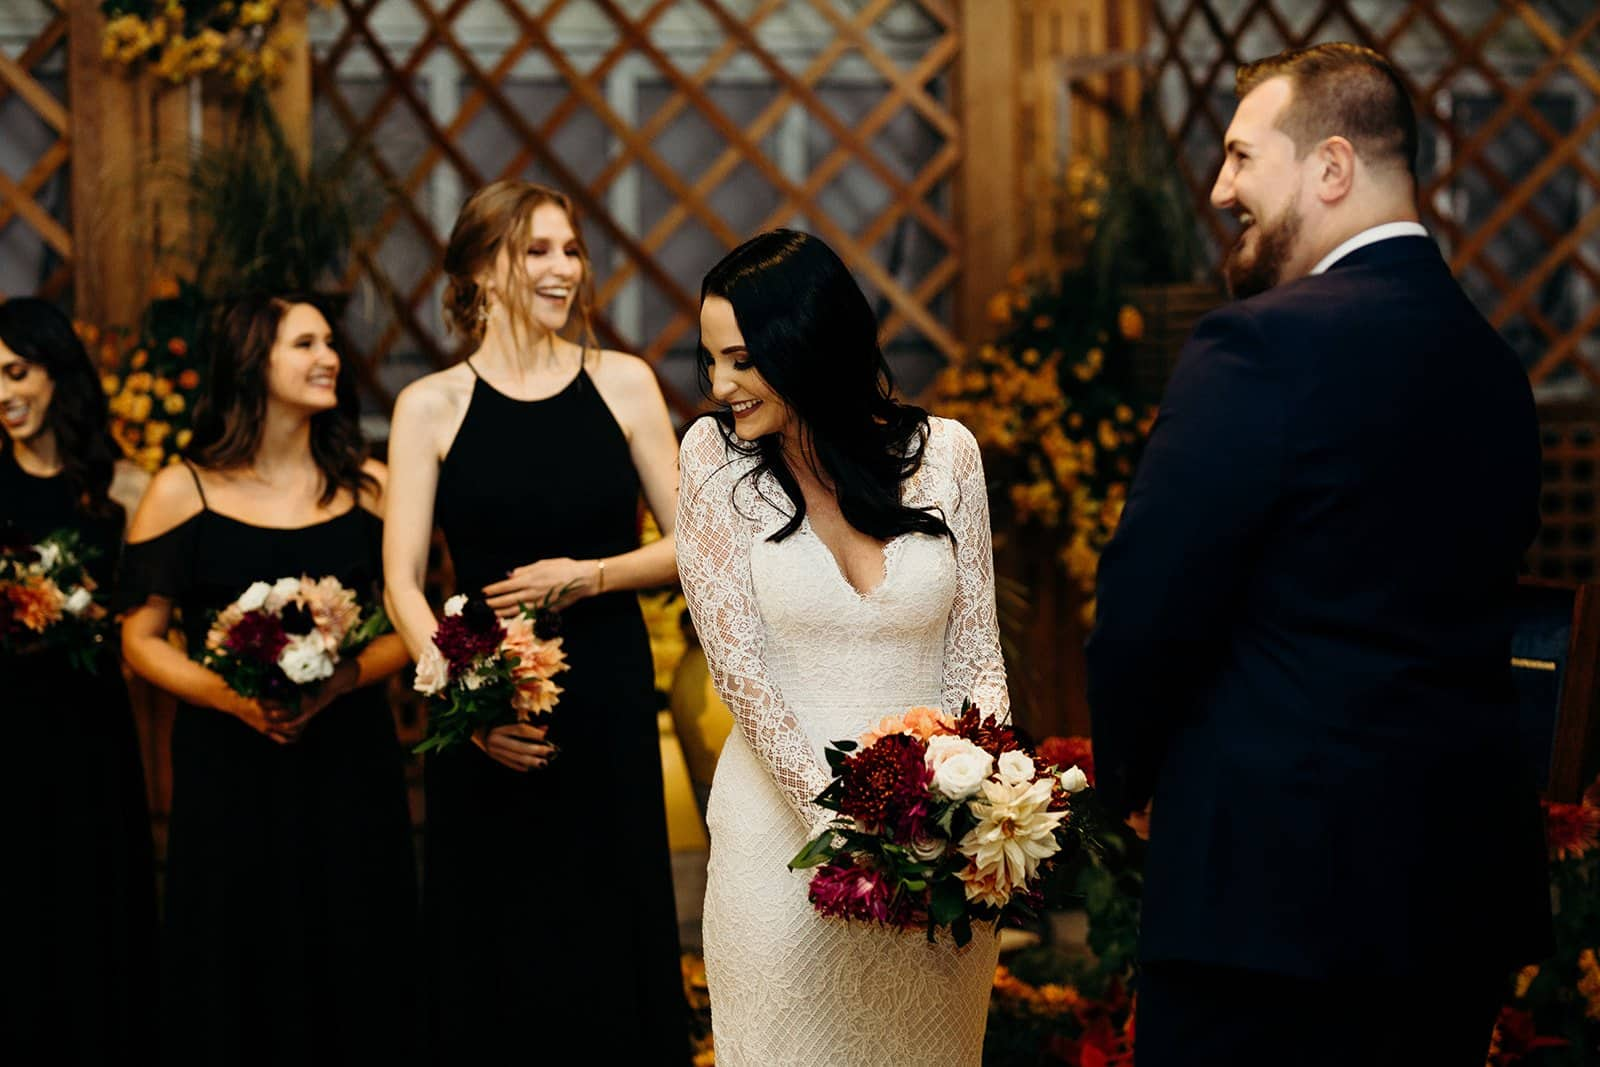 bride looks away from groom while laughing during ceremony